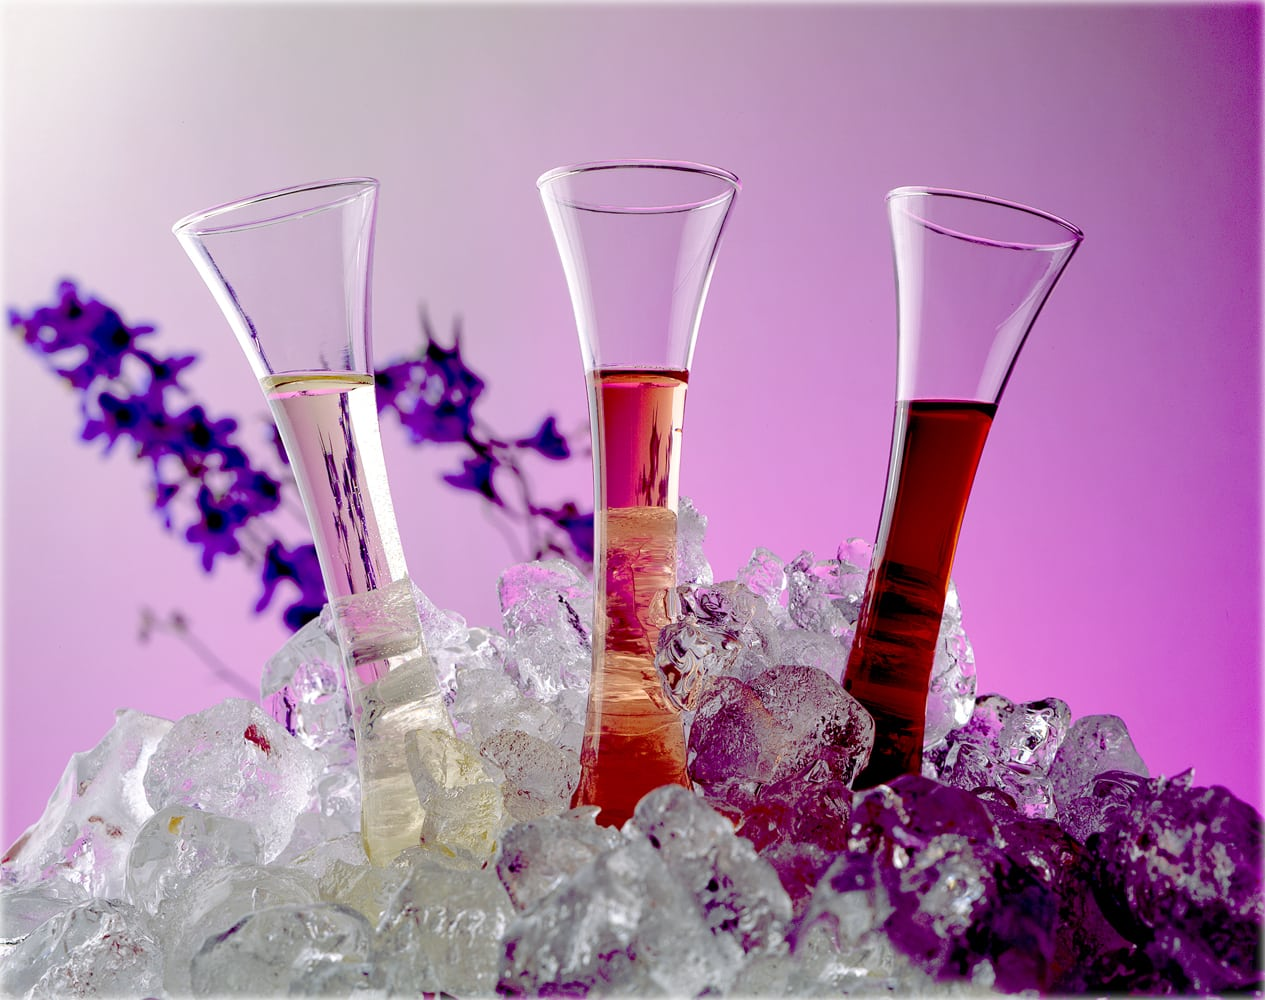 three test tube-like fluted glasses fanned and embedded in ice cubes with white, rose and read wine in them and a magenta background with purple flower props Product Photography